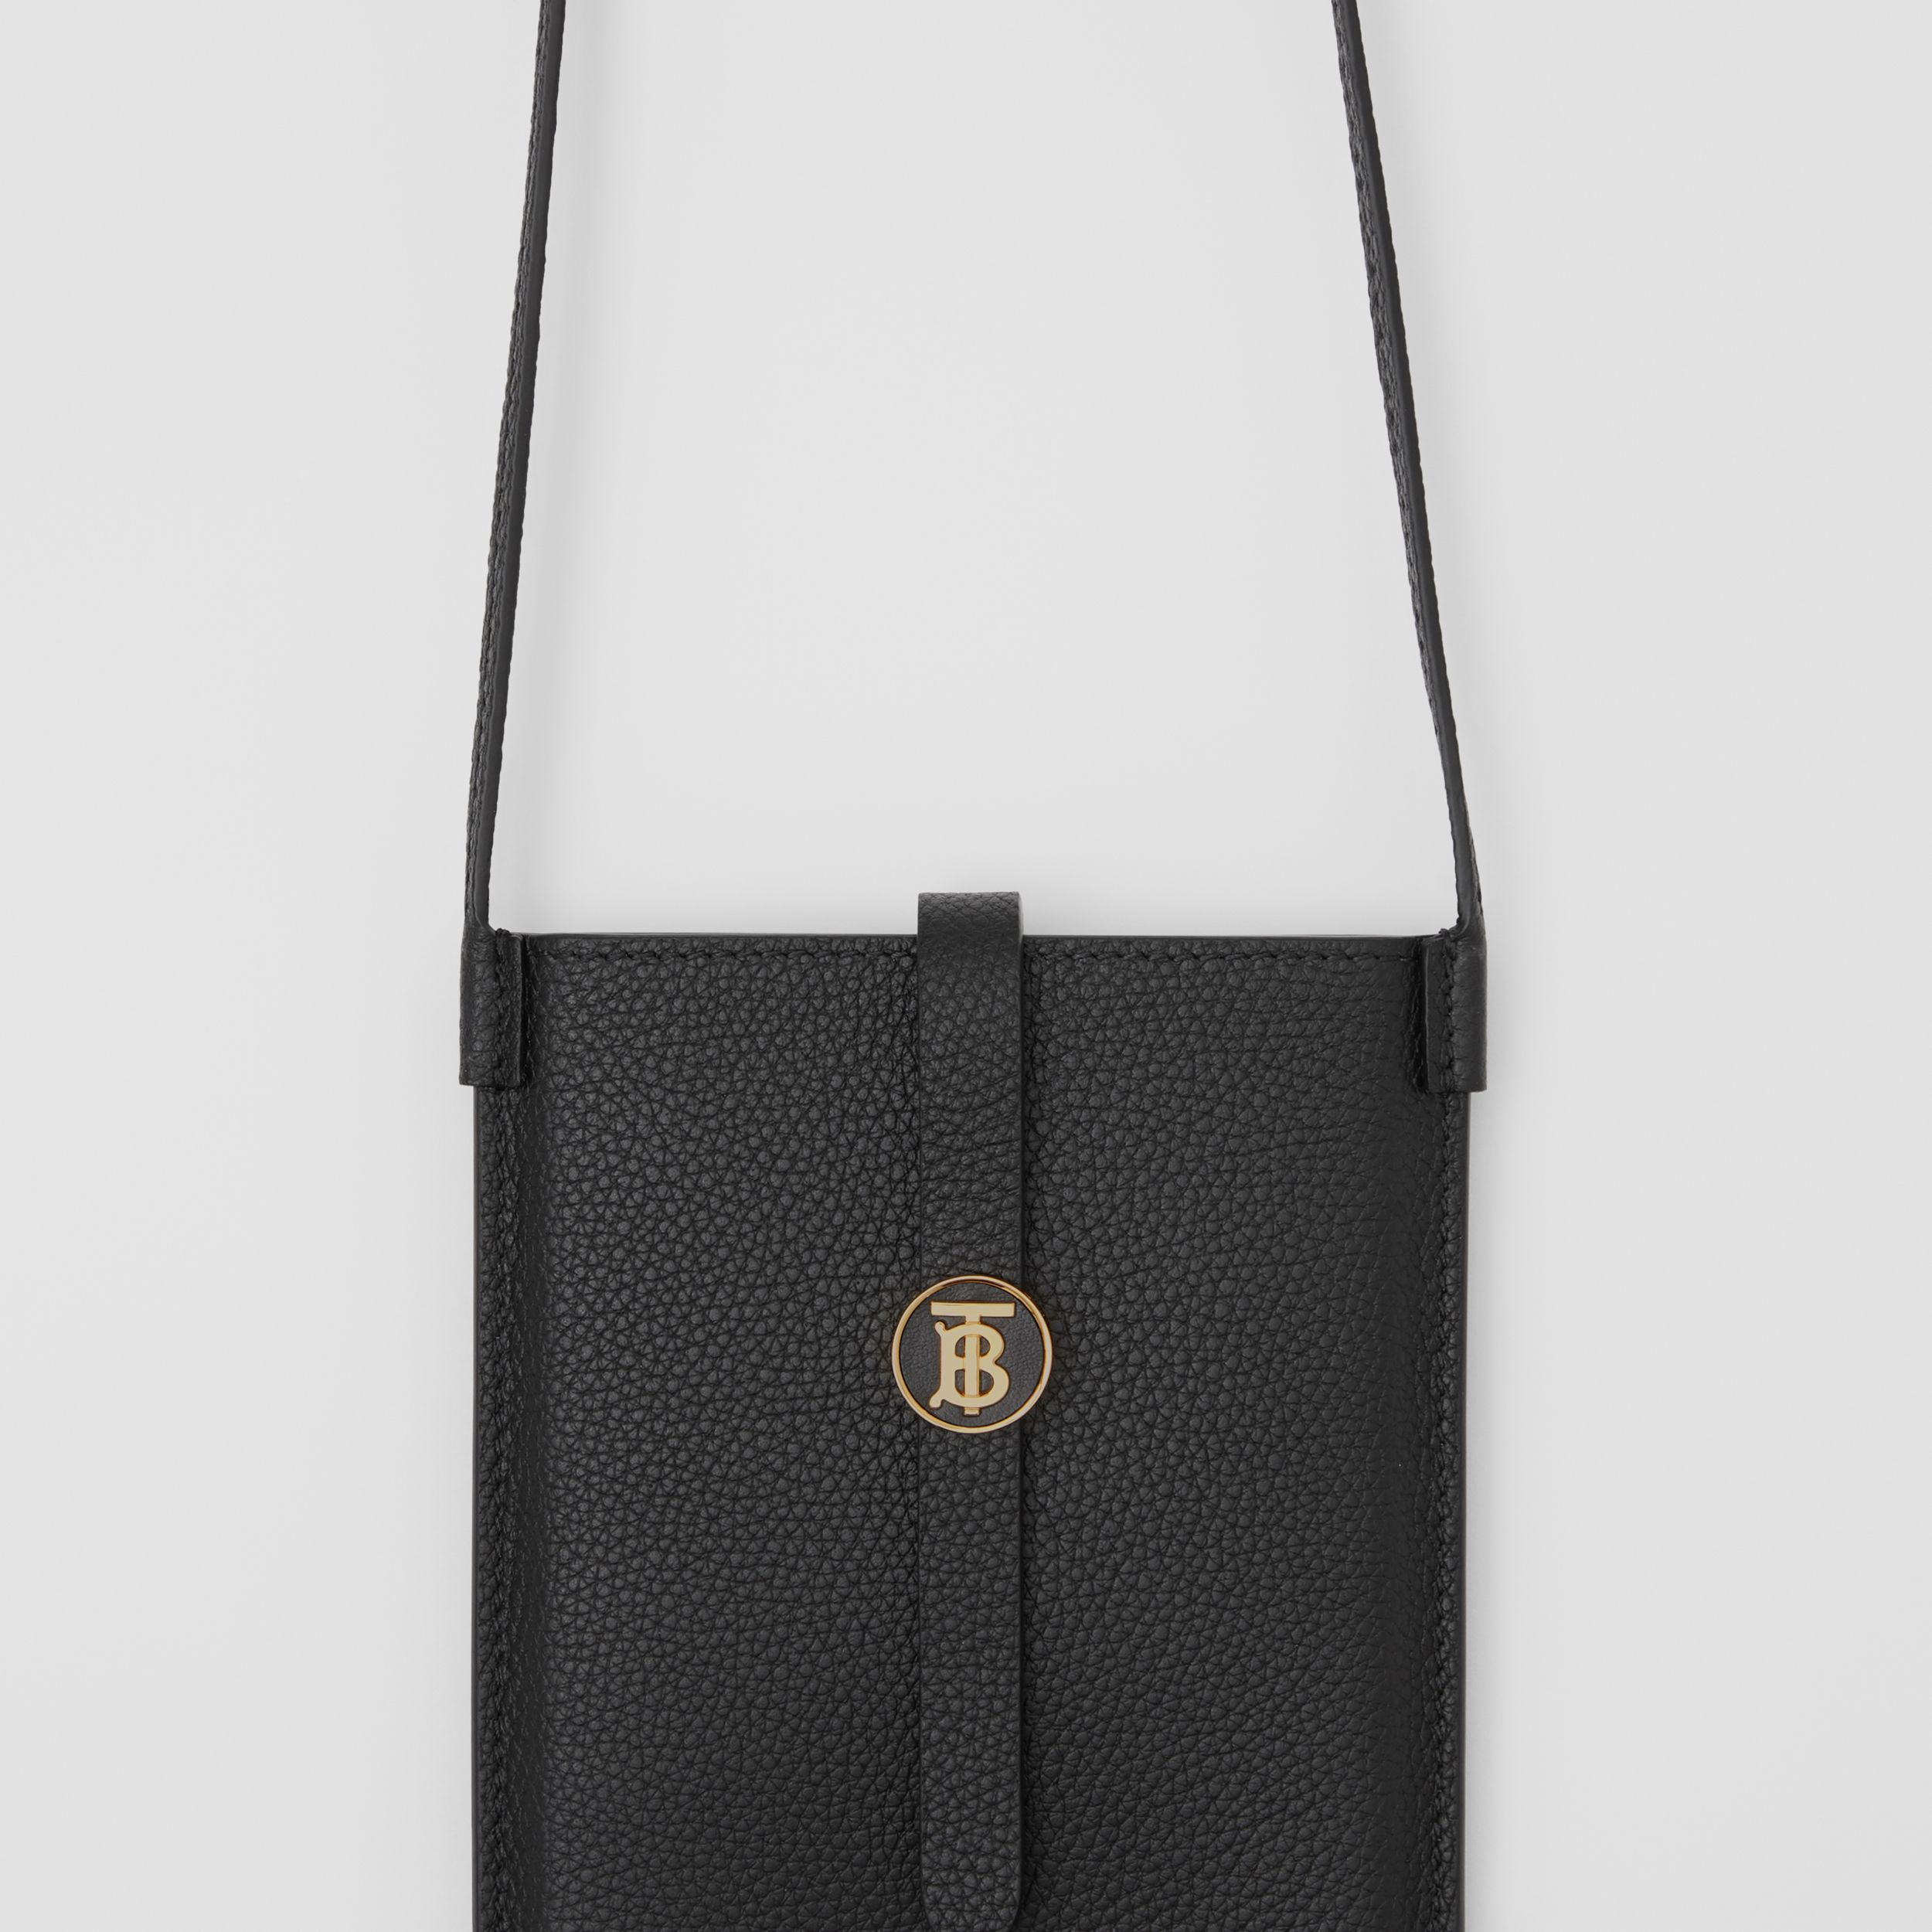 Grainy Leather Phone Case with Strap in Black | Burberry Canada - 2